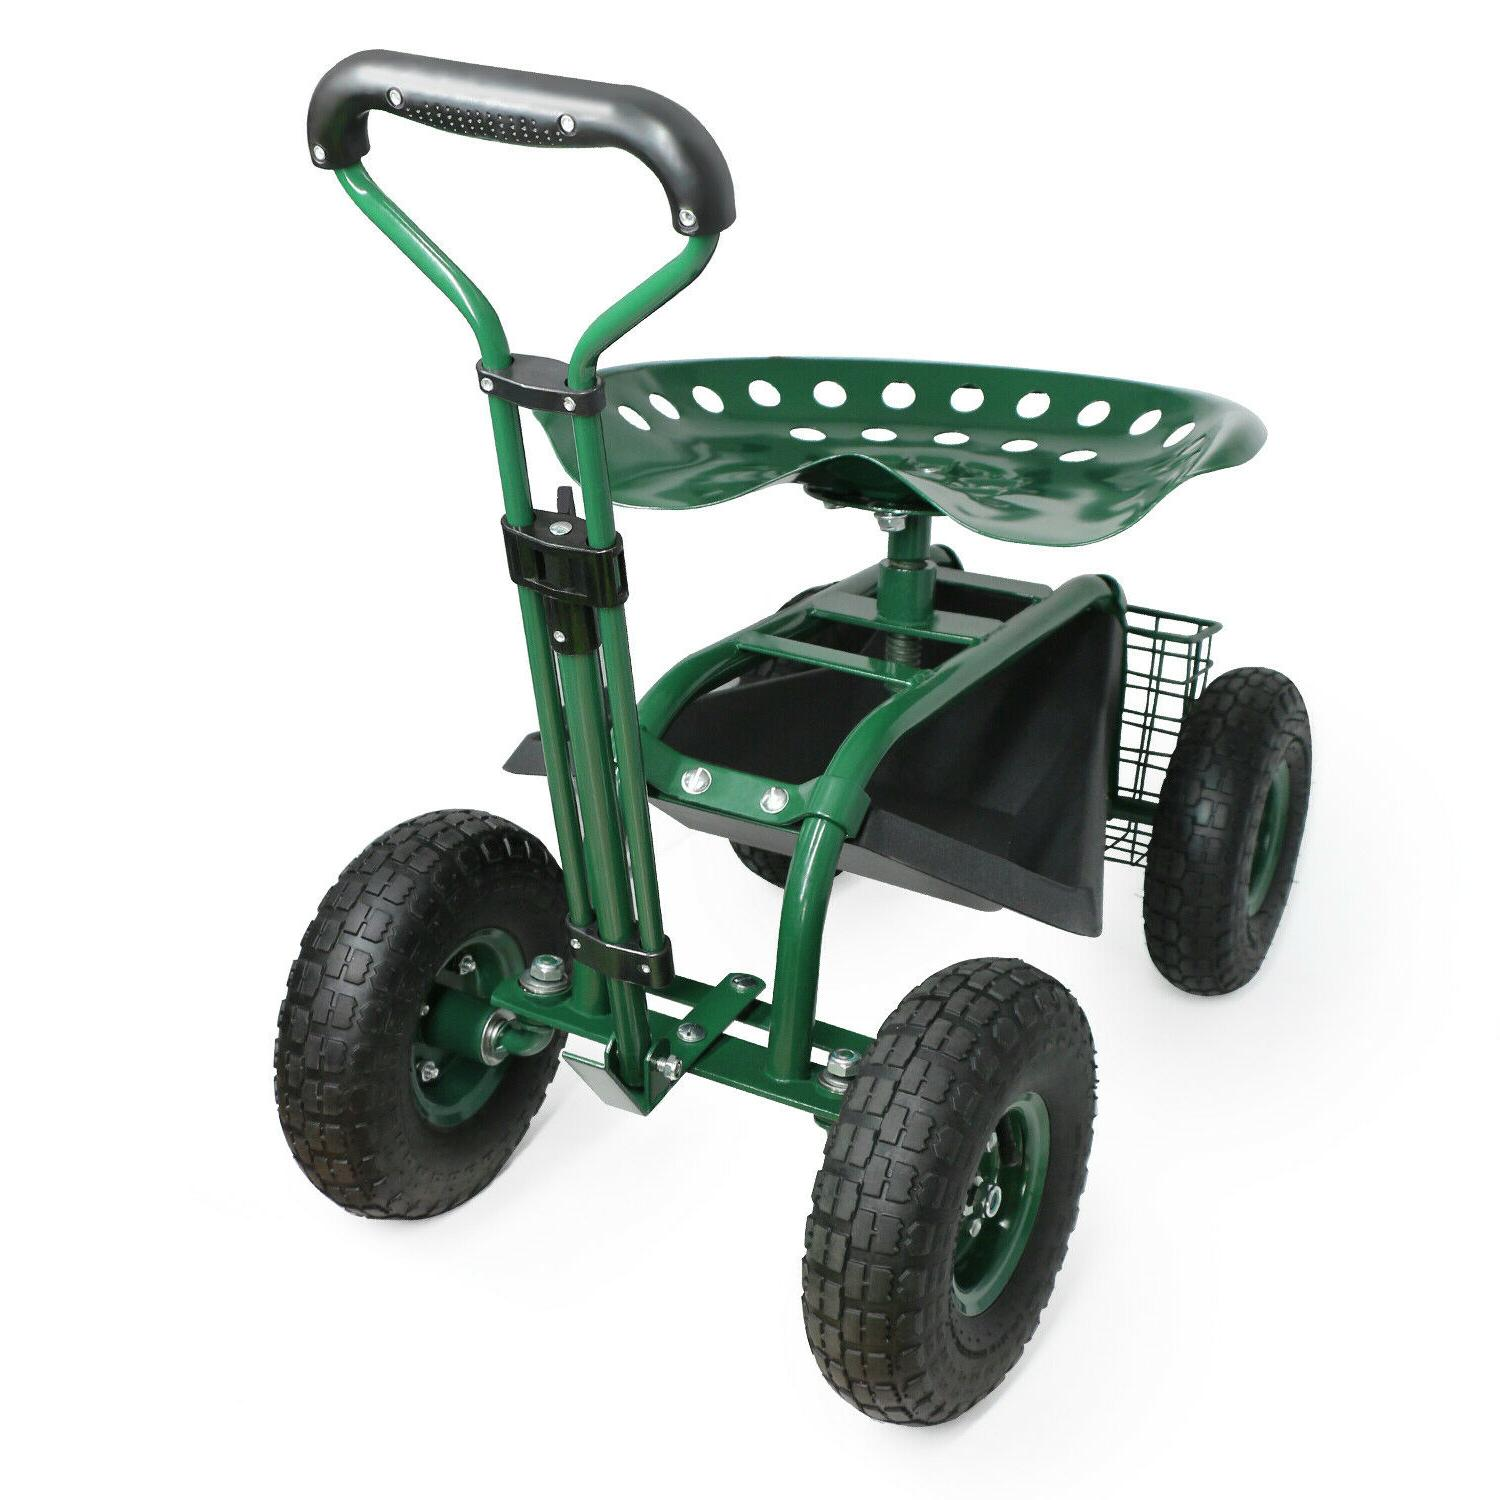 Patio Lawn Cart Planting w/Tool Utility Tray